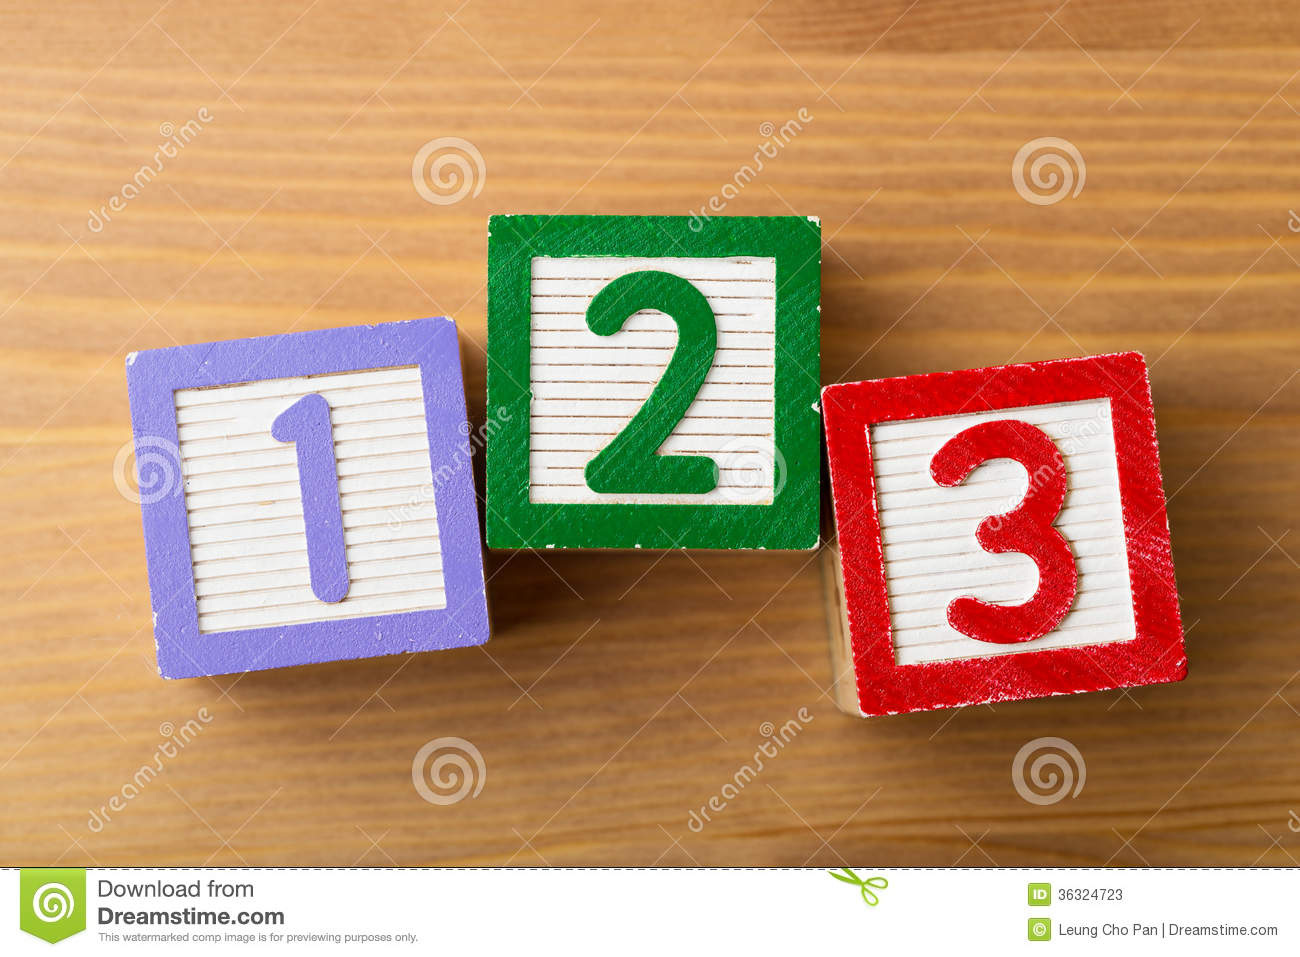 123 Toy Block Stock Photos - Image: 36324723